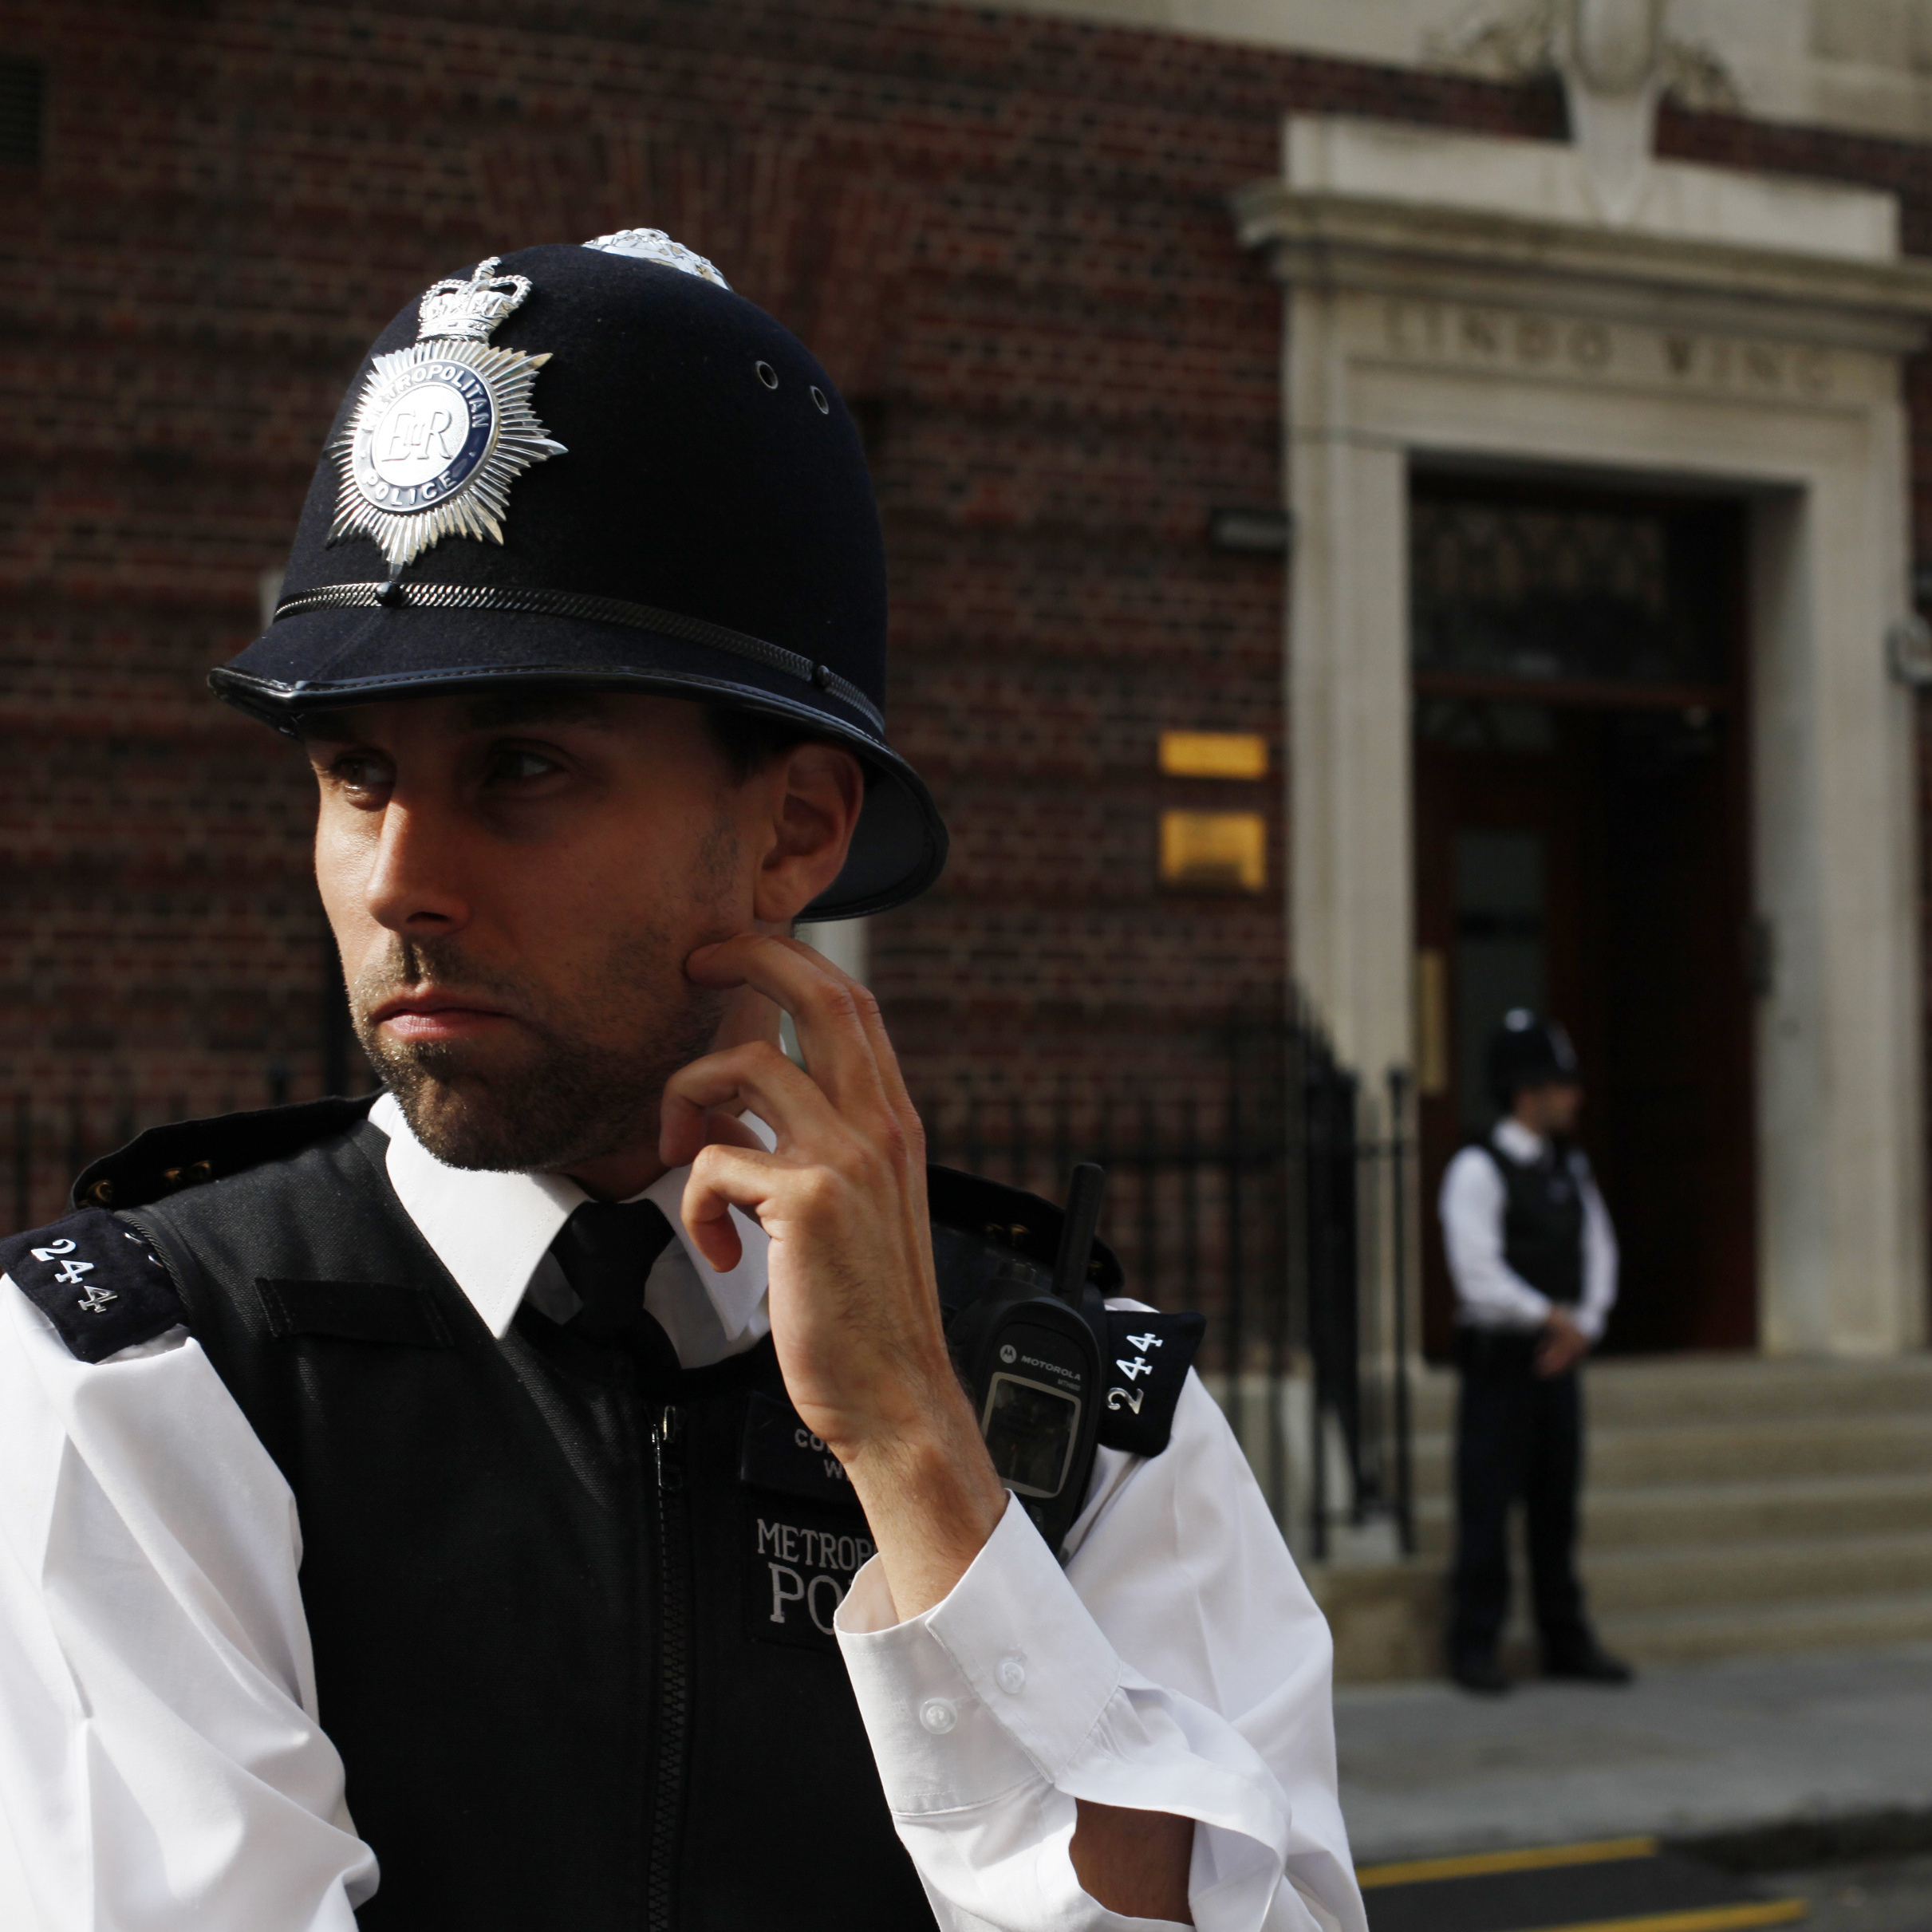 Waiting for word: Police officers stood guard early Monday outside St Mary's Hospital in London, where the Duchess of Cambridge is said to be in labor.